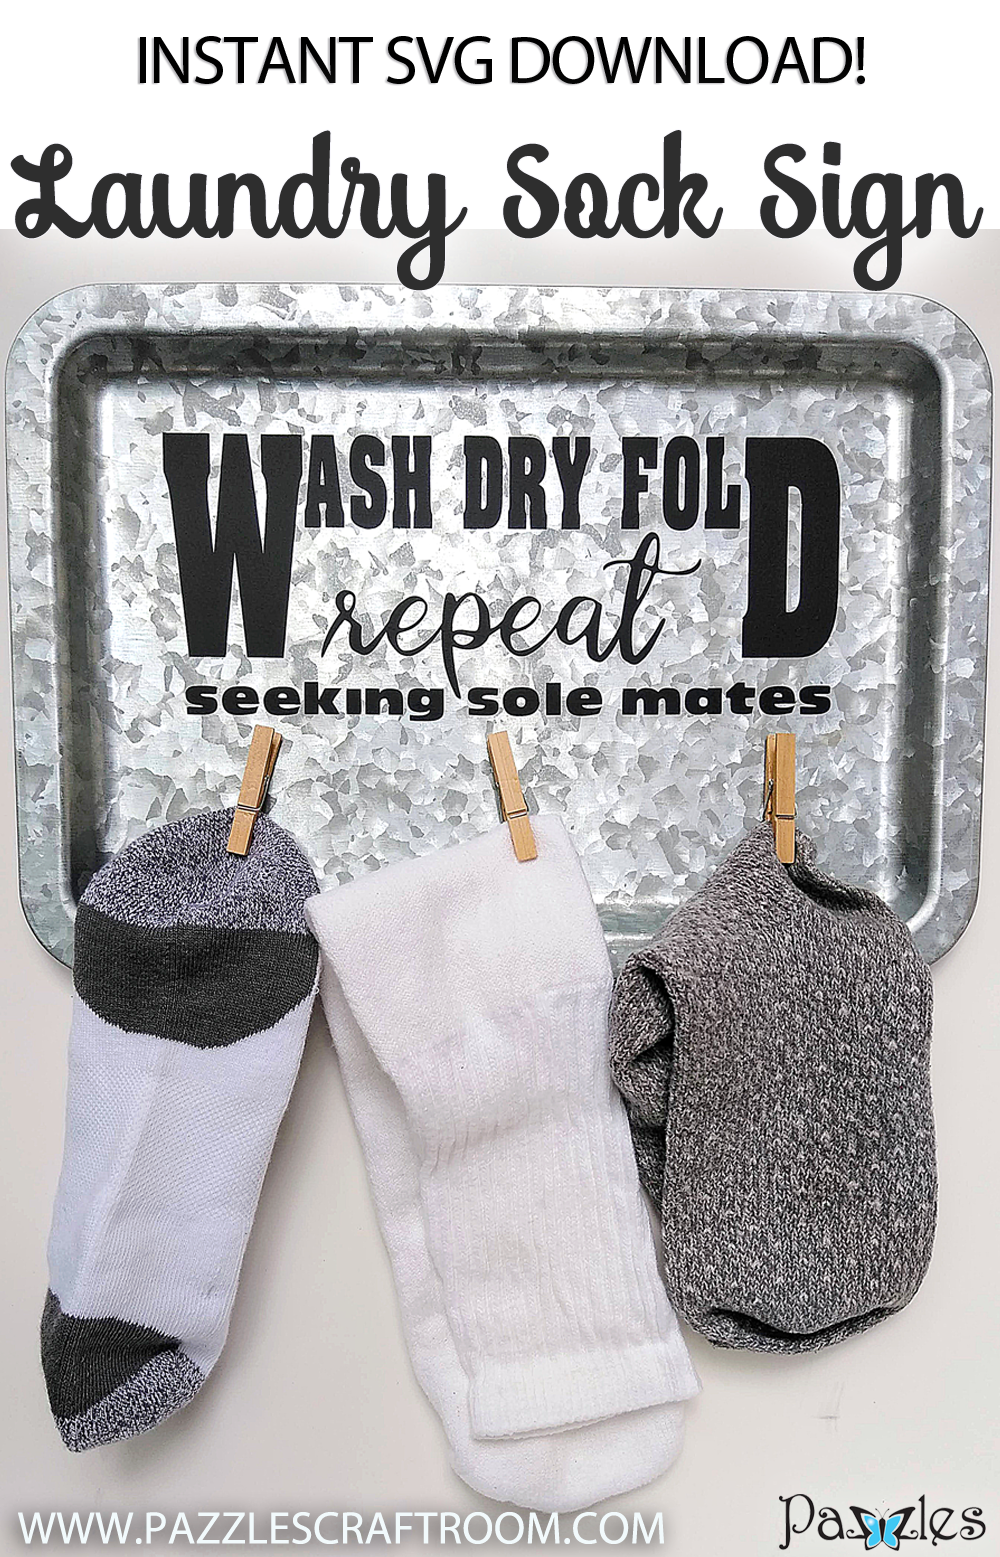 Pazzles DIY Laundry Missing Sock Sign by Renee Smart Instant SVG Download